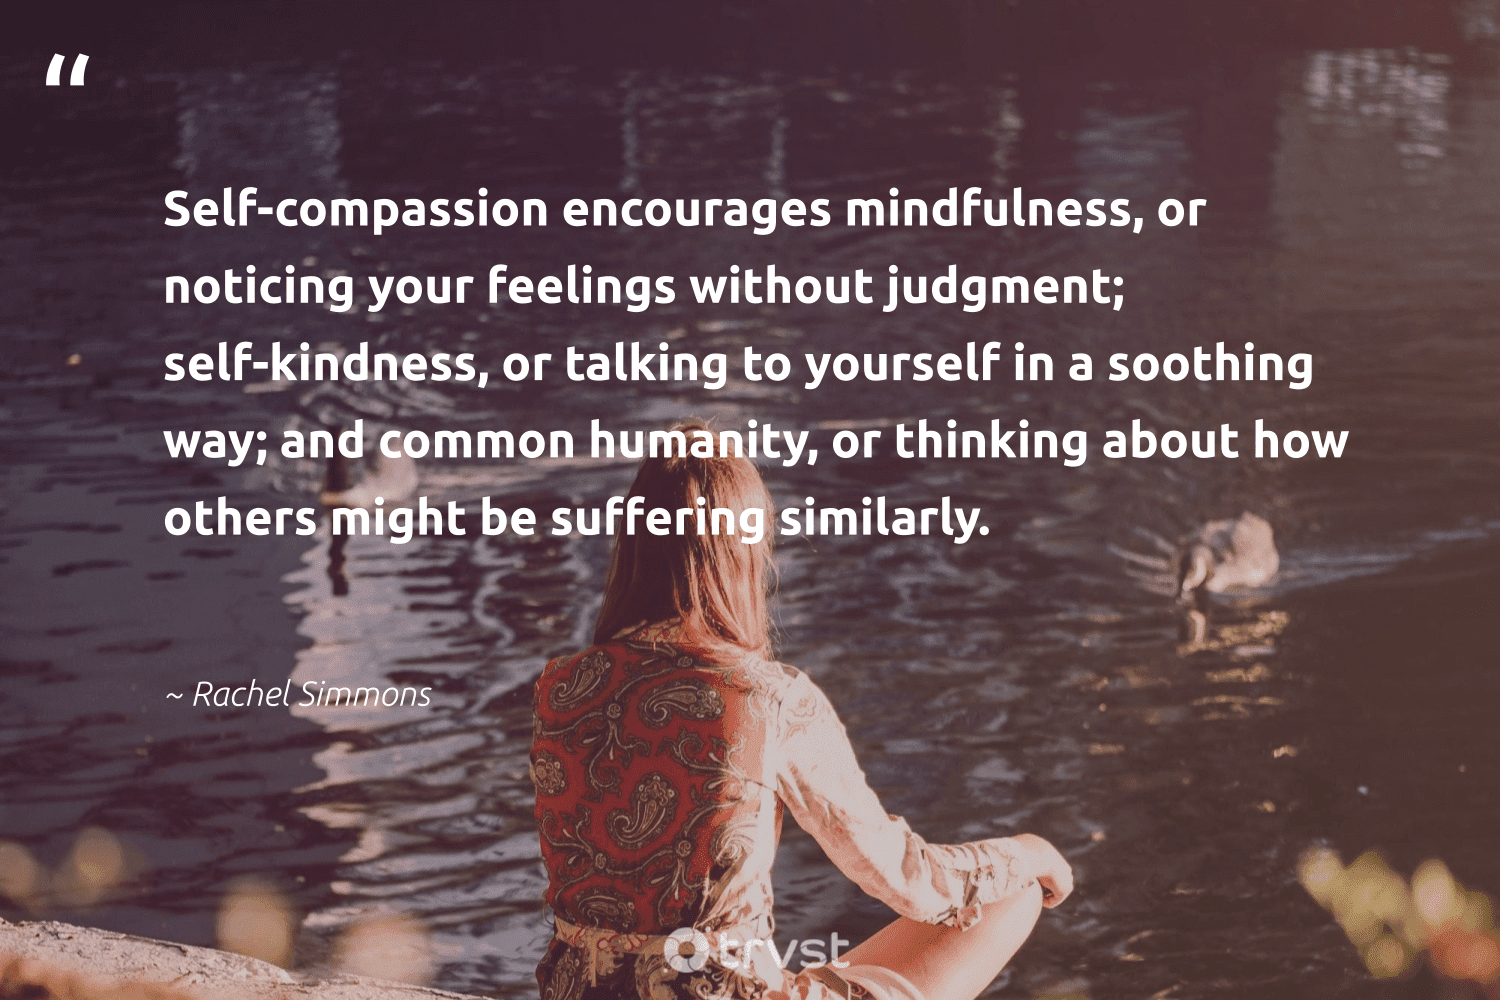 """""""Self-compassion encourages mindfulness, or noticing your feelings without judgment; self-kindness, or talking to yourself in a soothing way; and common humanity, or thinking about how others might be suffering similarly.""""  - Rachel Simmons #trvst #quotes #mindfulness #kindness #positivity #meditation #begreat #dogood #entrepreneurmindset #mindset #togetherwecan #takeaction"""